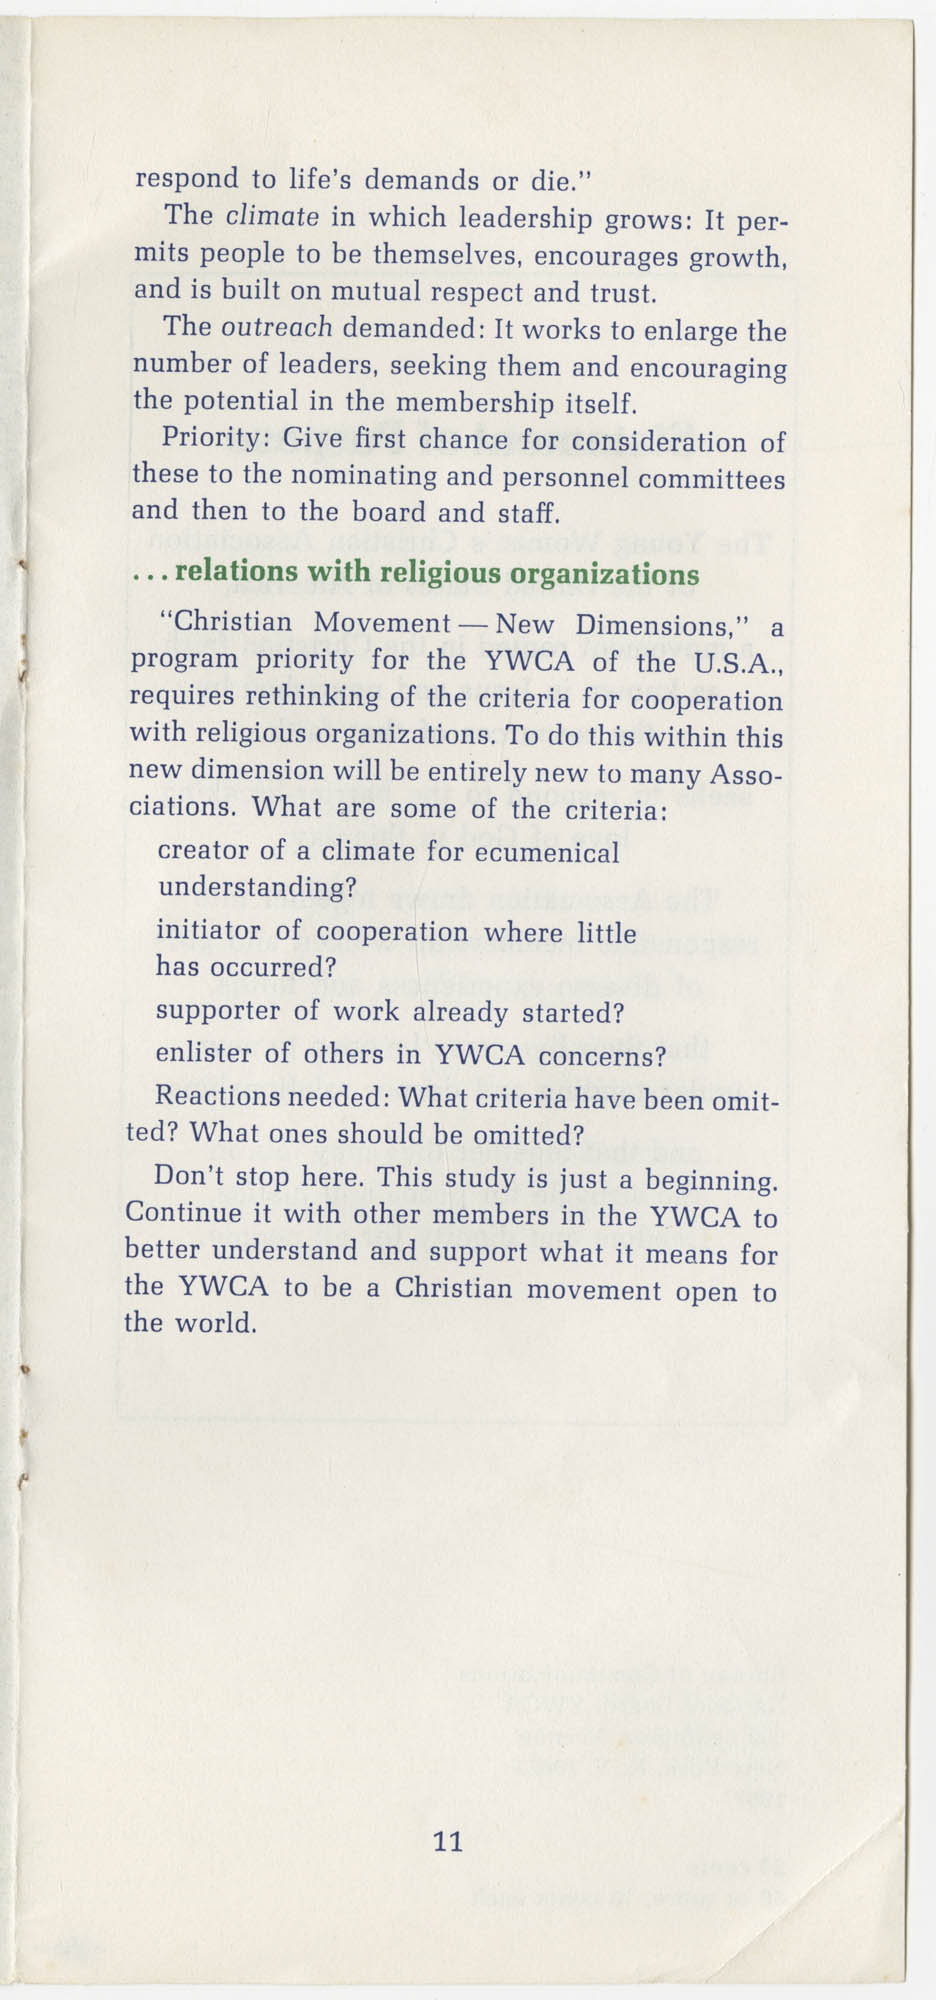 The Y.W.C.A.: A Christian Movement Open to the World, Page 11